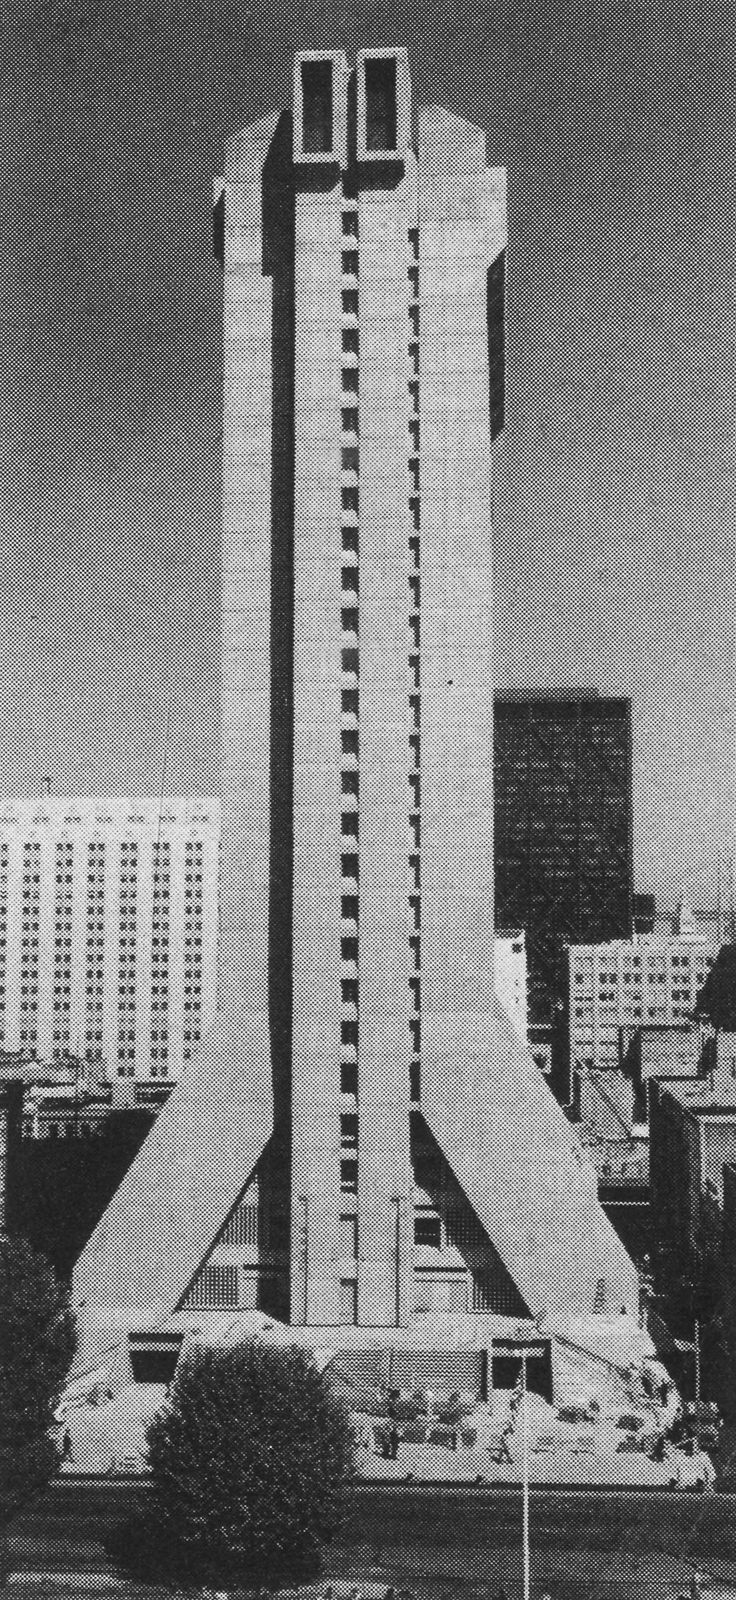 Holiday Inn Hotel, San Francisco, California, 1970 (Clement Chen & Associates with John Carl Warnecke & Associates)